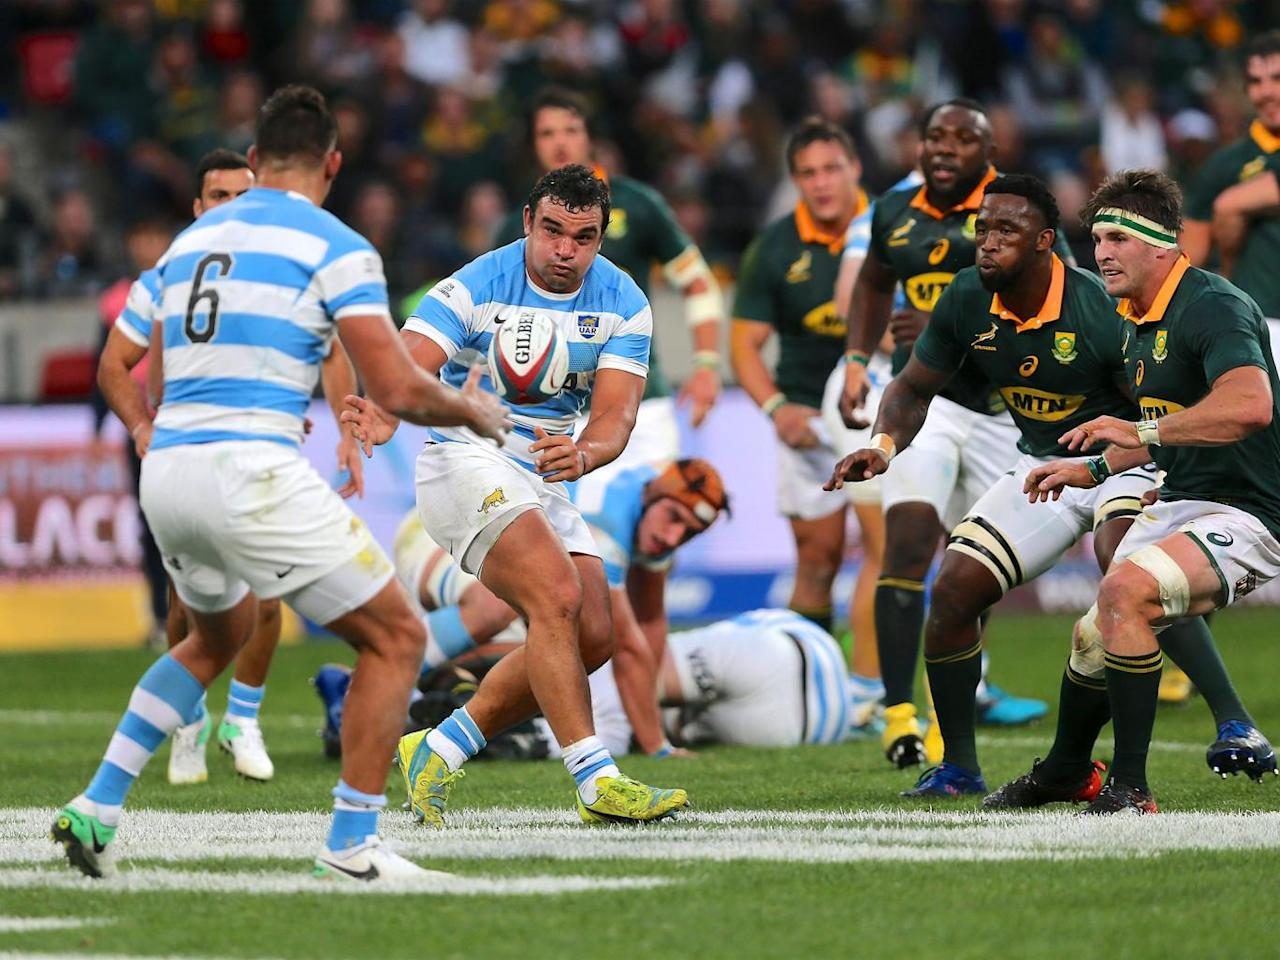 South Africa power past the Pumas in Rugby Championship opener